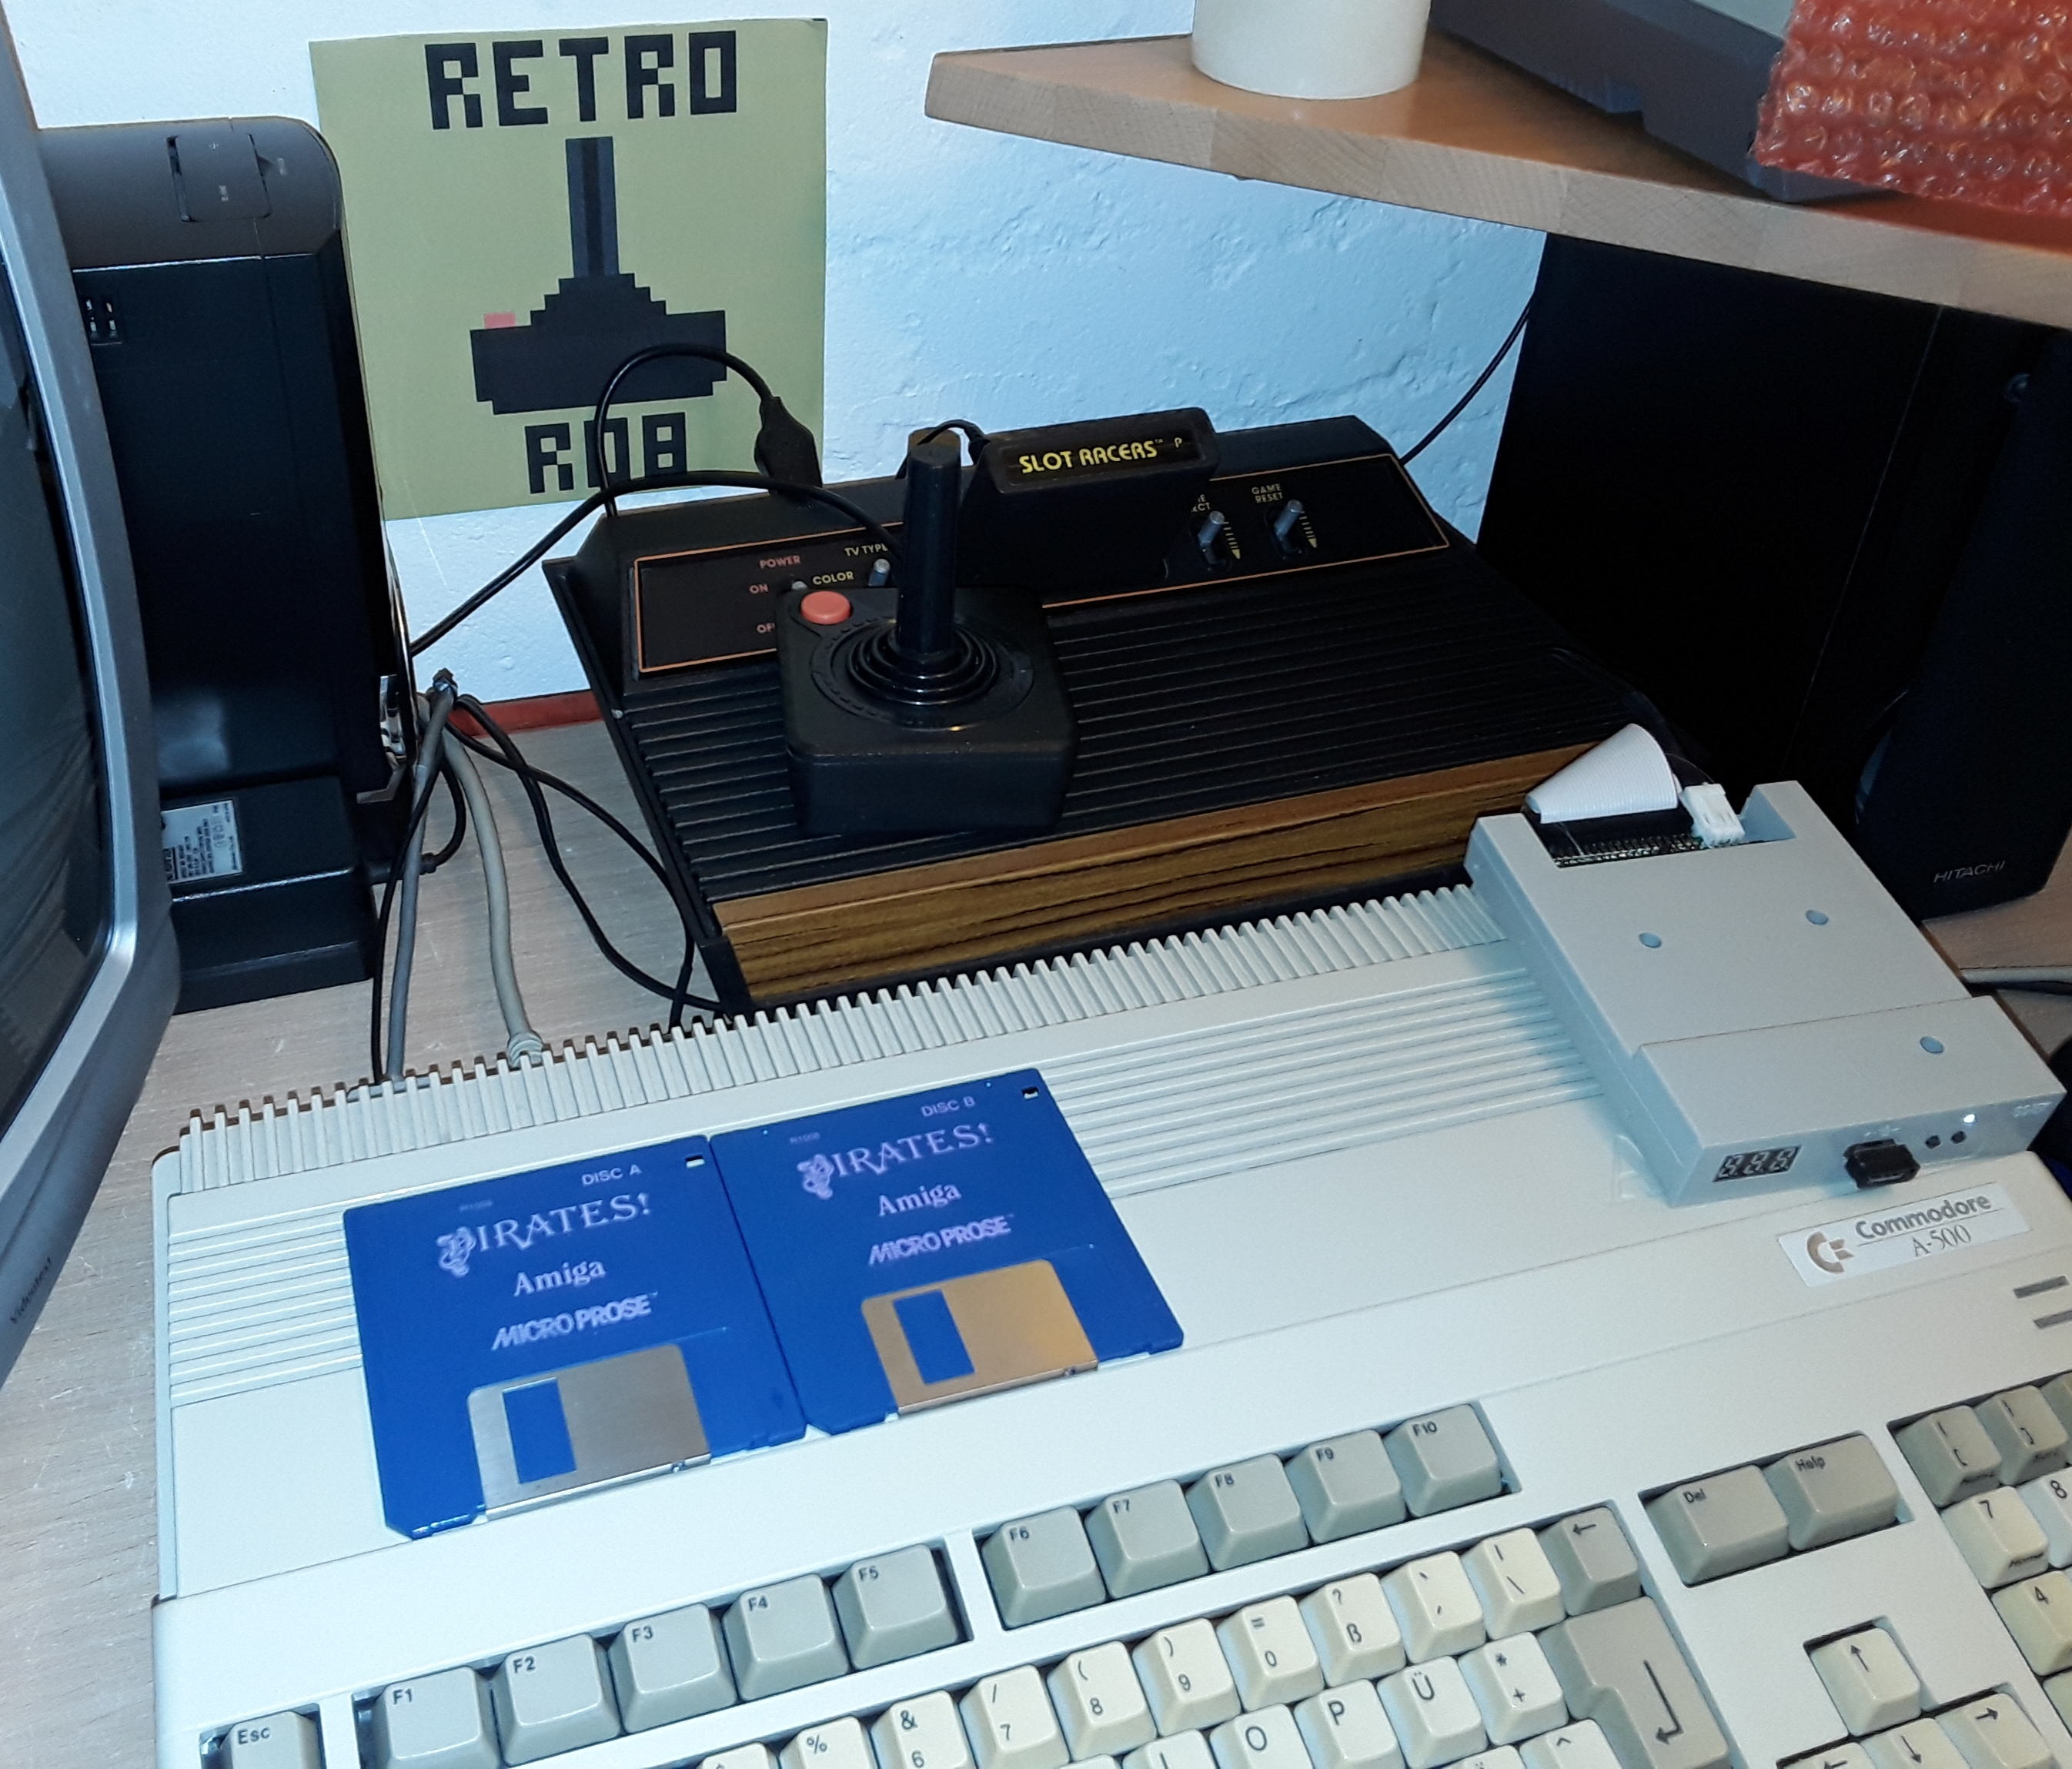 RetroRob: Pirates [Gold] (Amiga) 26,180 points on 2019-01-27 11:51:14